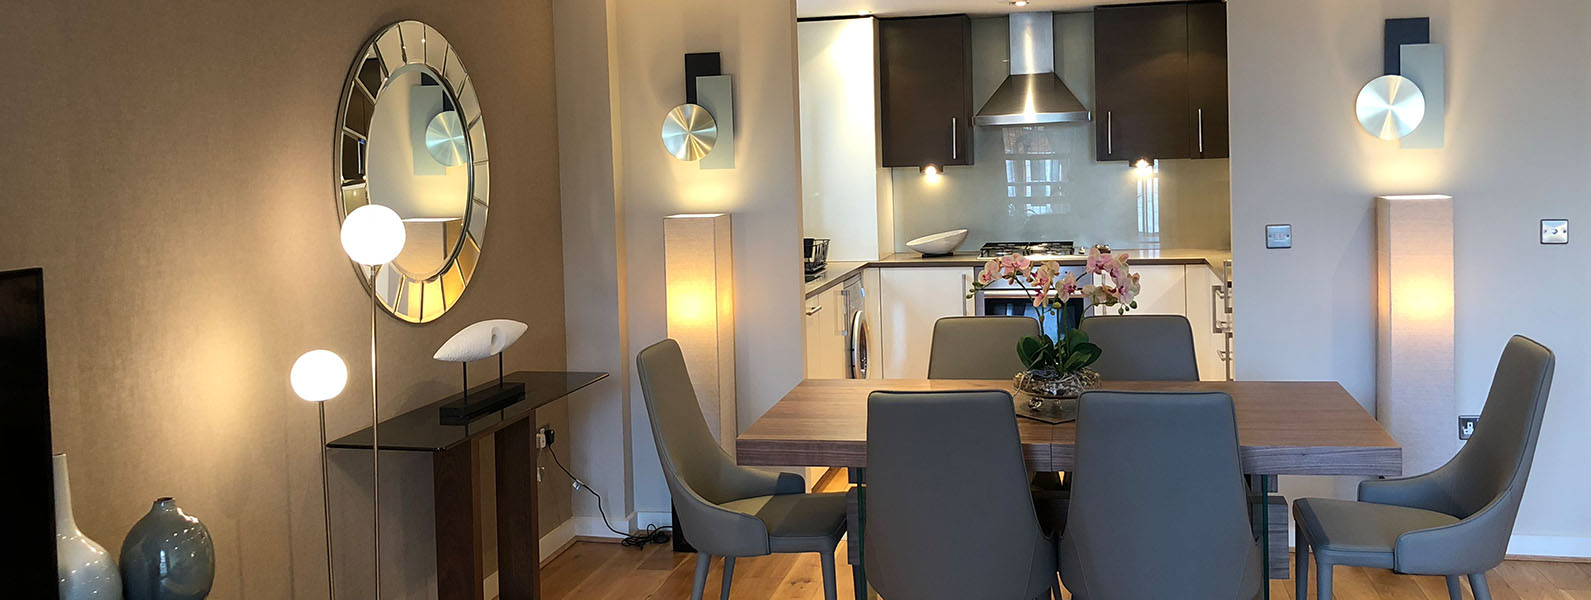 Dining room interior design and styling details by Moji Salehi at Moji Interiors in Hove.